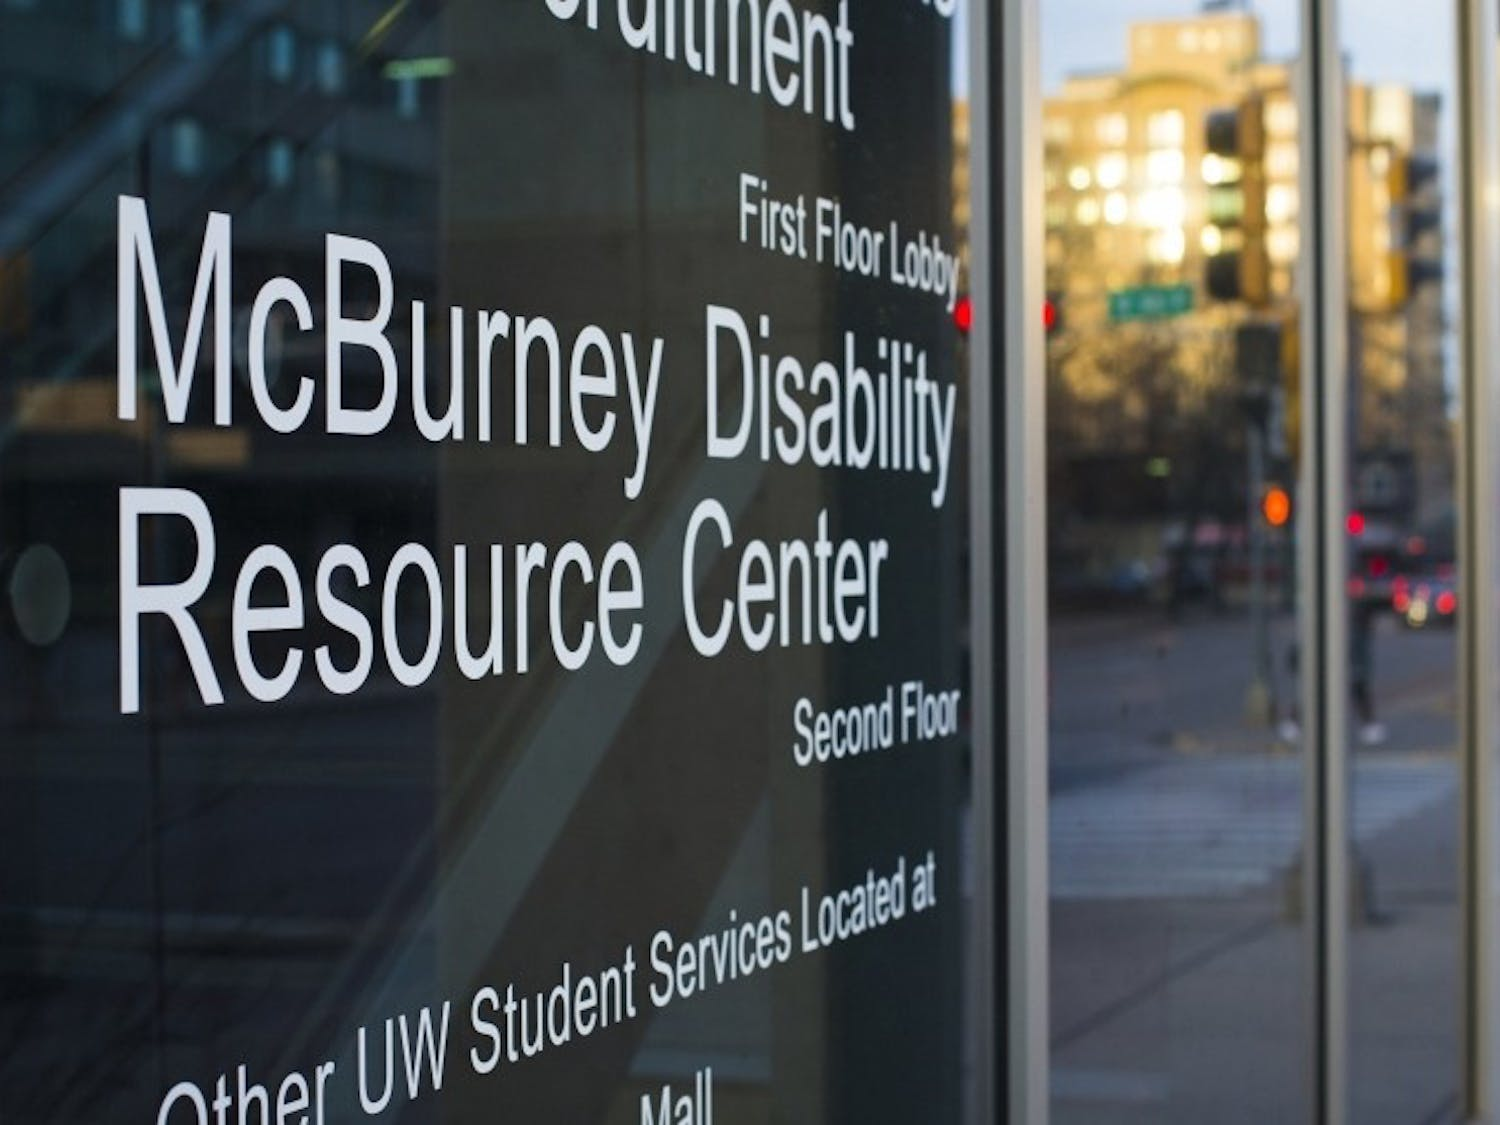 The number of students with McBurney Disability Resource Center VISAS soared over 10 years, causing the center to embark on mental health awareness initiatives.